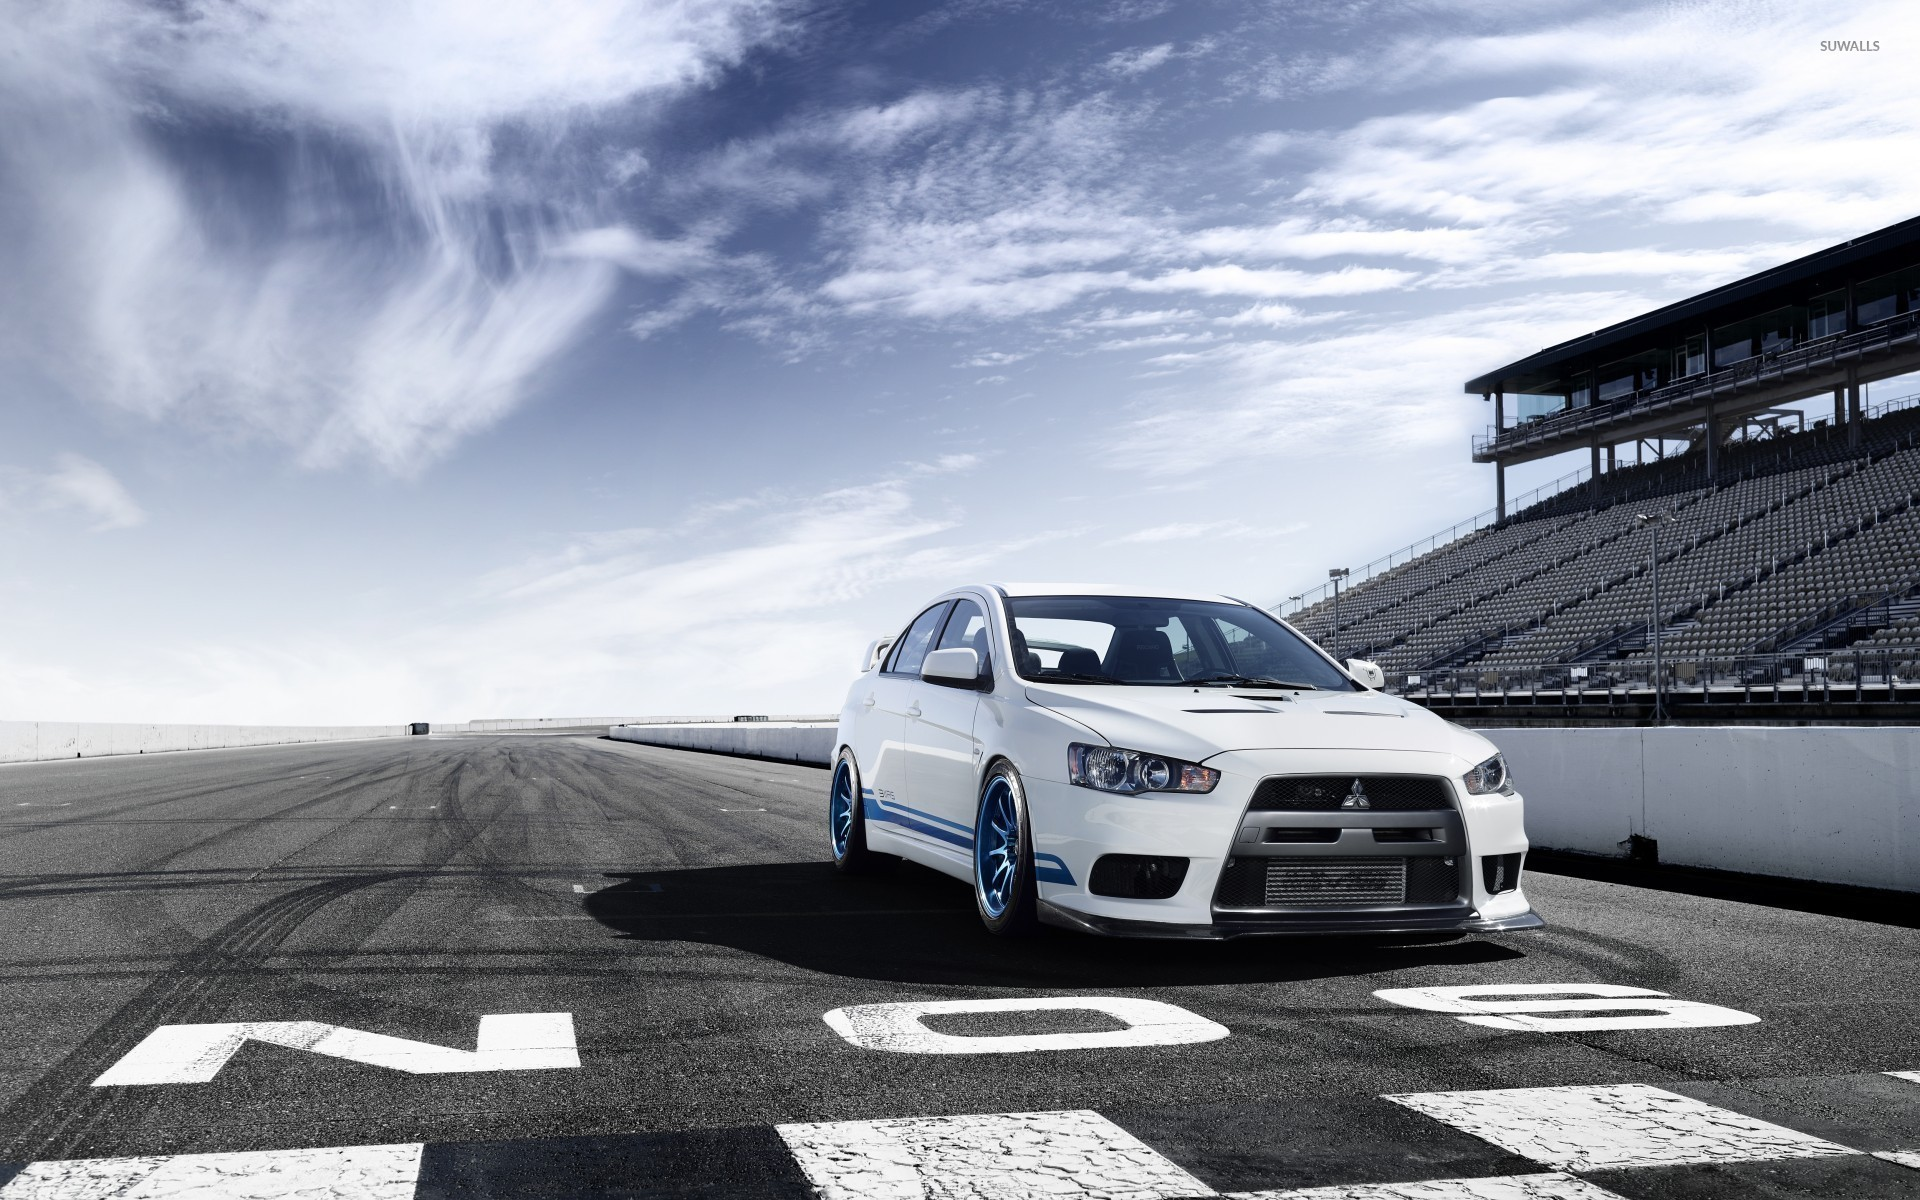 Mitsubishi Lancer Evolution [9] wallpaper jpg